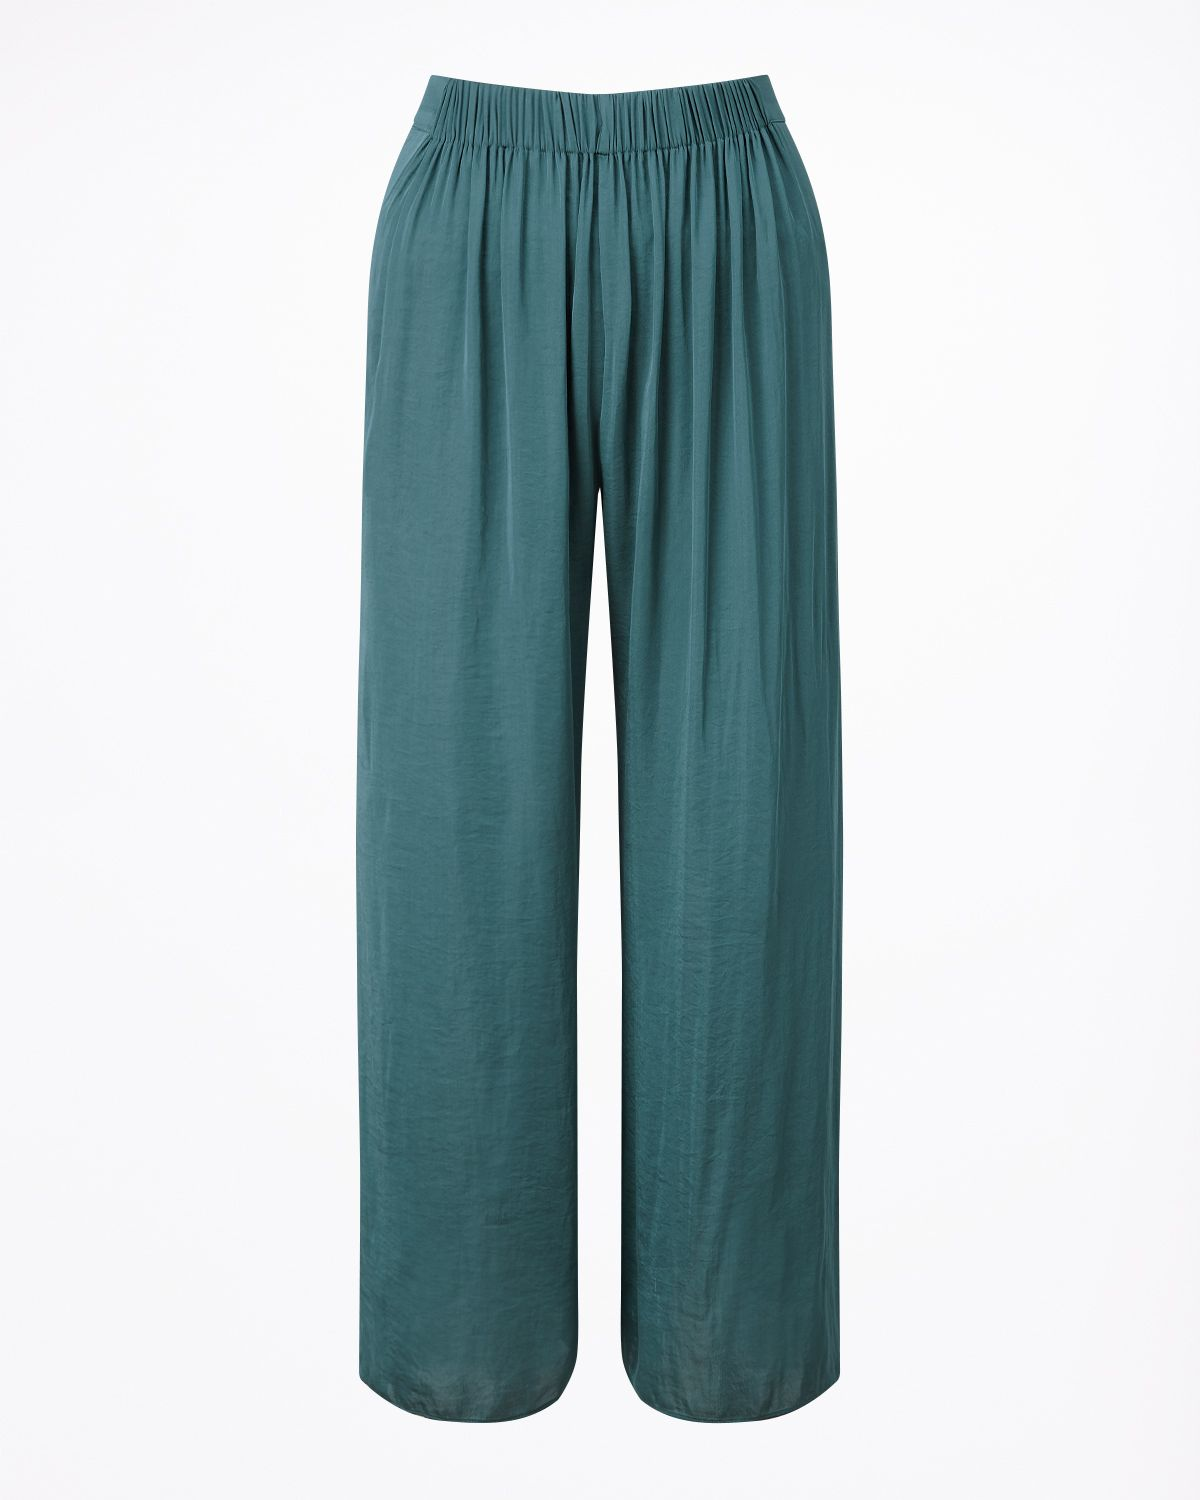 Jigsaw Crocus Drape Gathered Trouser, Green